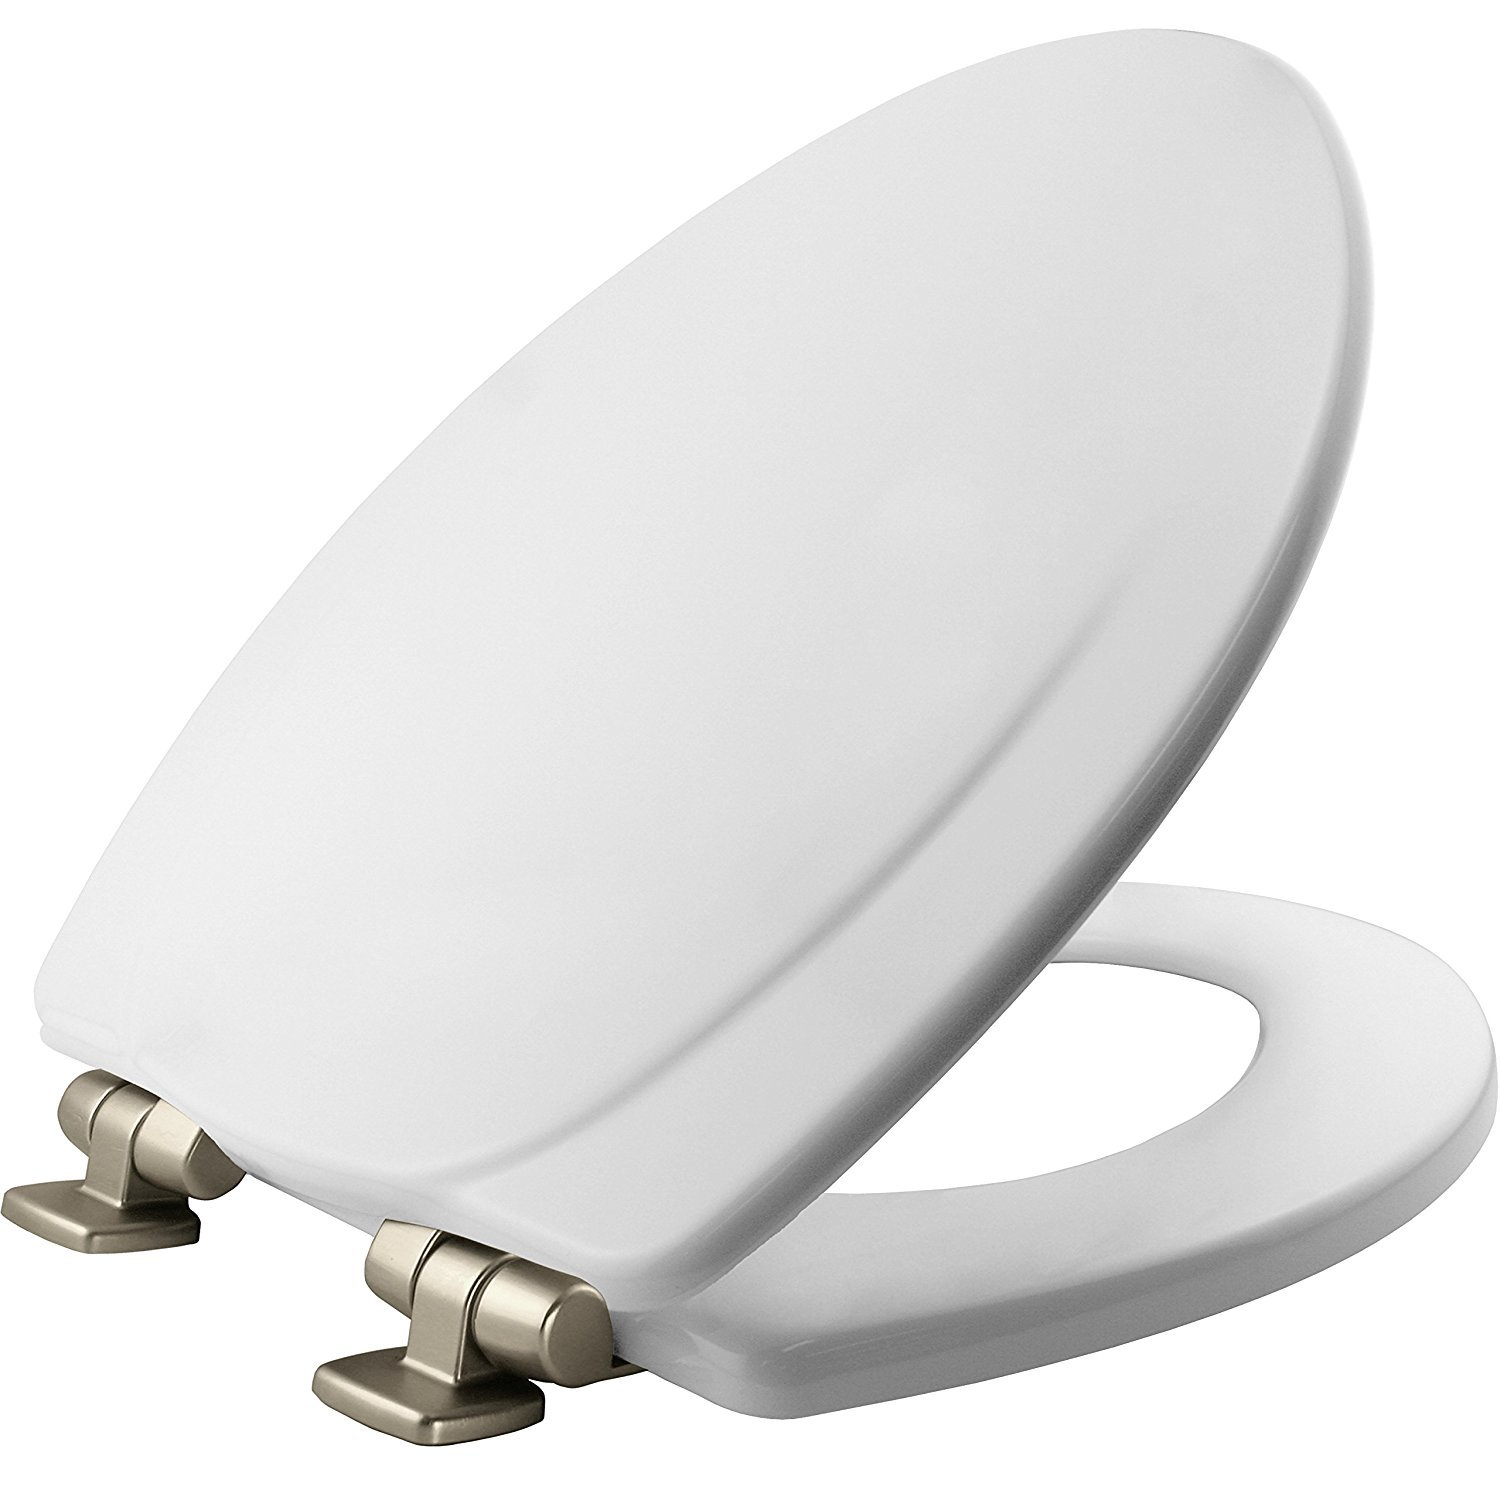 MAYFAIR Toilet Seat 1830NISL 000 with Chrome Hinges will Slow Close and Never Come Loose, ELONGATED, Durable Enameled Wood, White by Mayfair